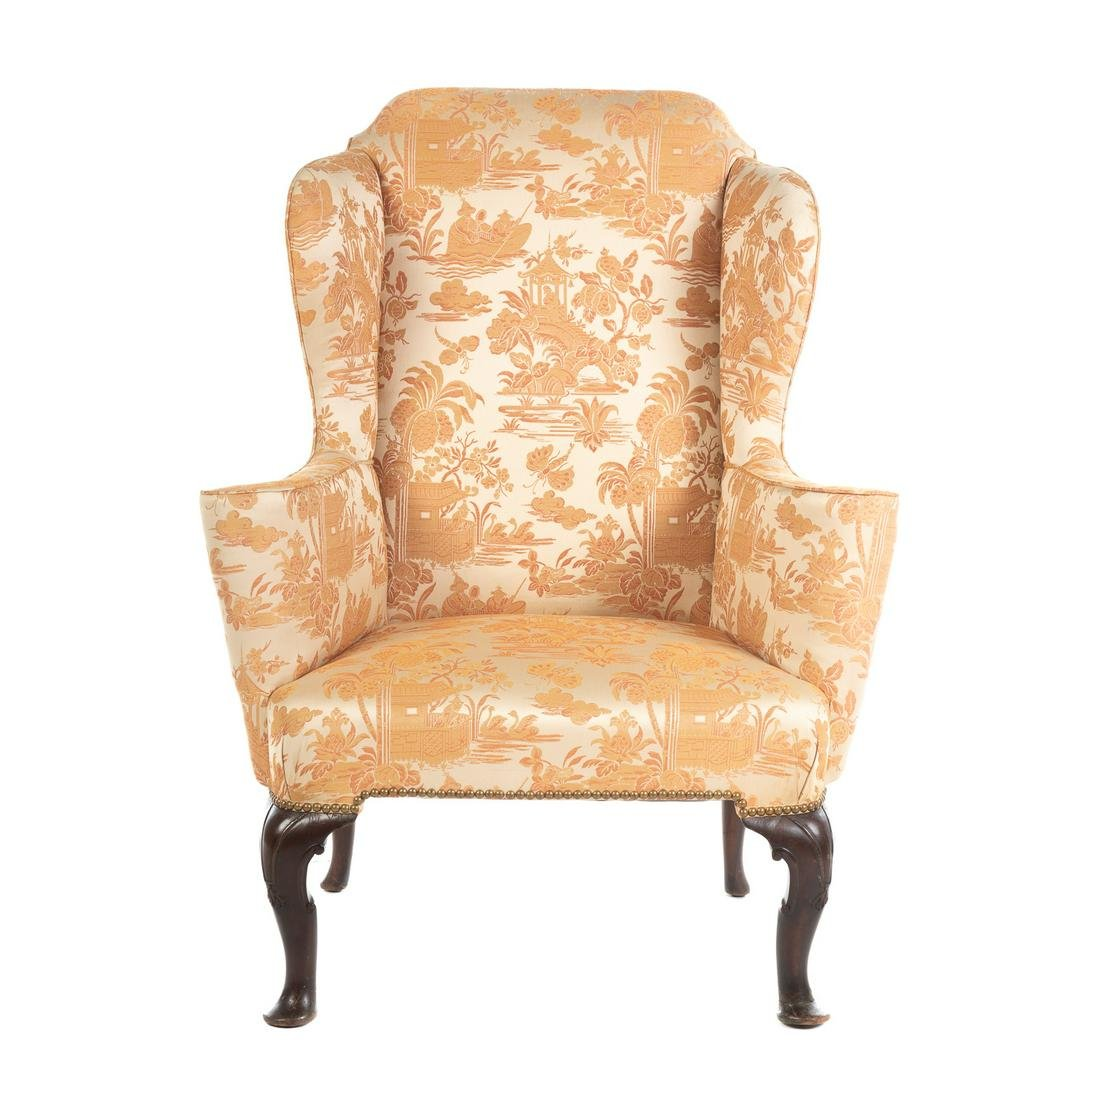 George II Mahogany Upholstered Wing Chair